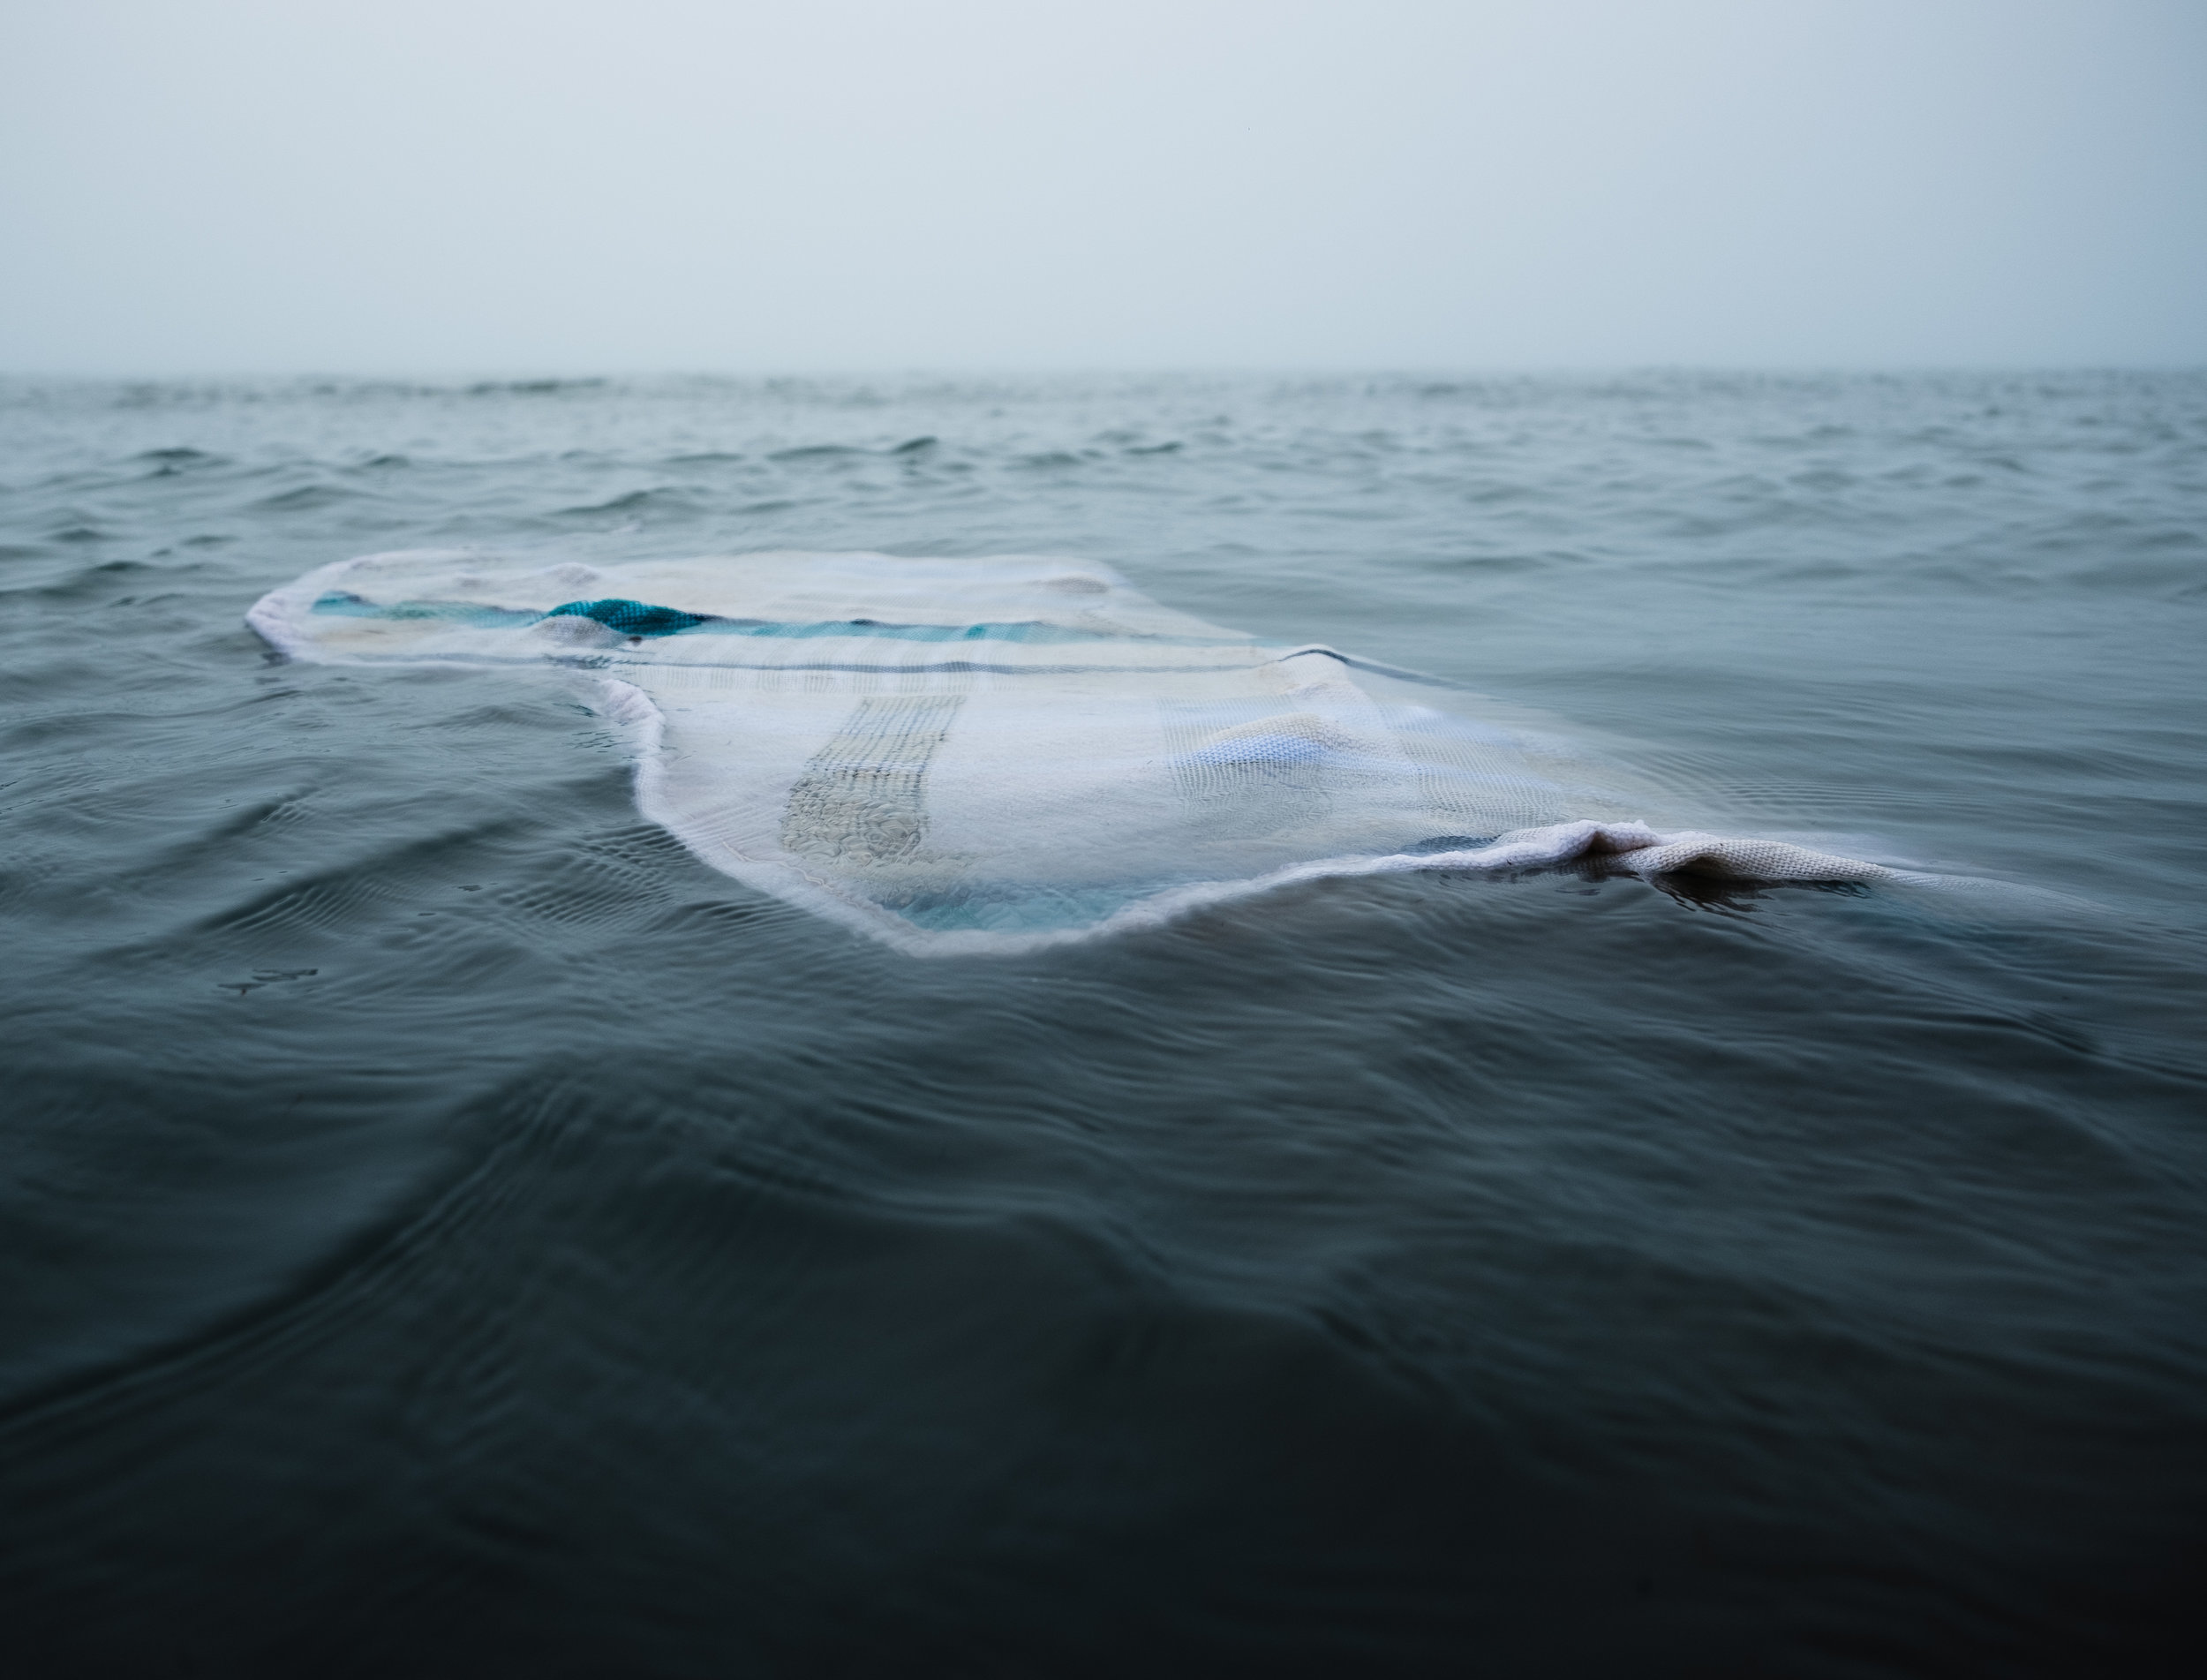 Staysail (Drifting) , Photographic Documentation of Performance with Handwoven Sail, 2018  photo credit  Ben Dembroski    Read more about the making of this image .